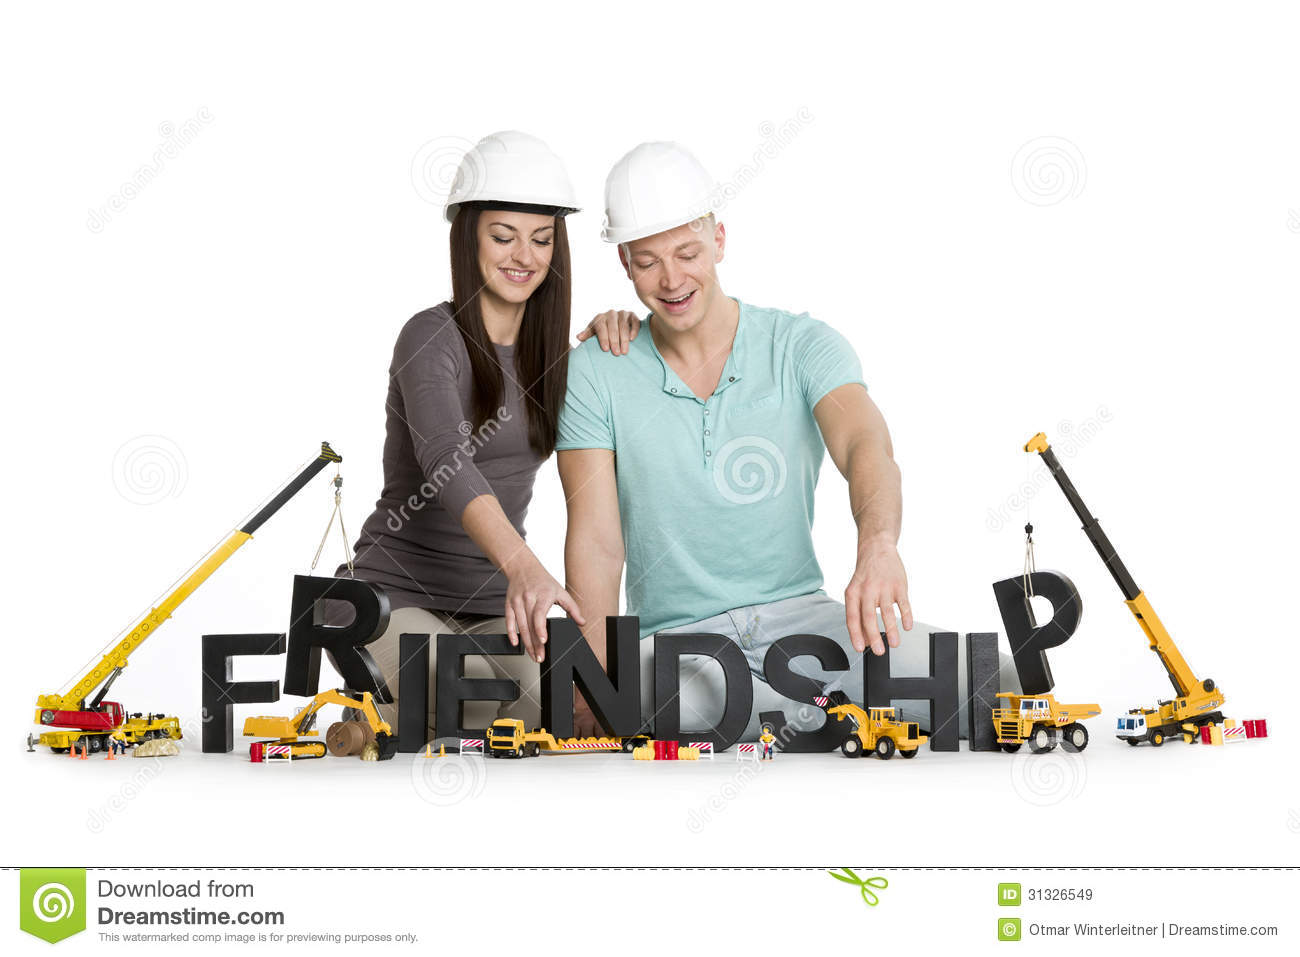 happy-man-woman-developing-friendship-building-up-concept-joyful-men-women-word-along-construction-machines-isolated-31326549.jpg